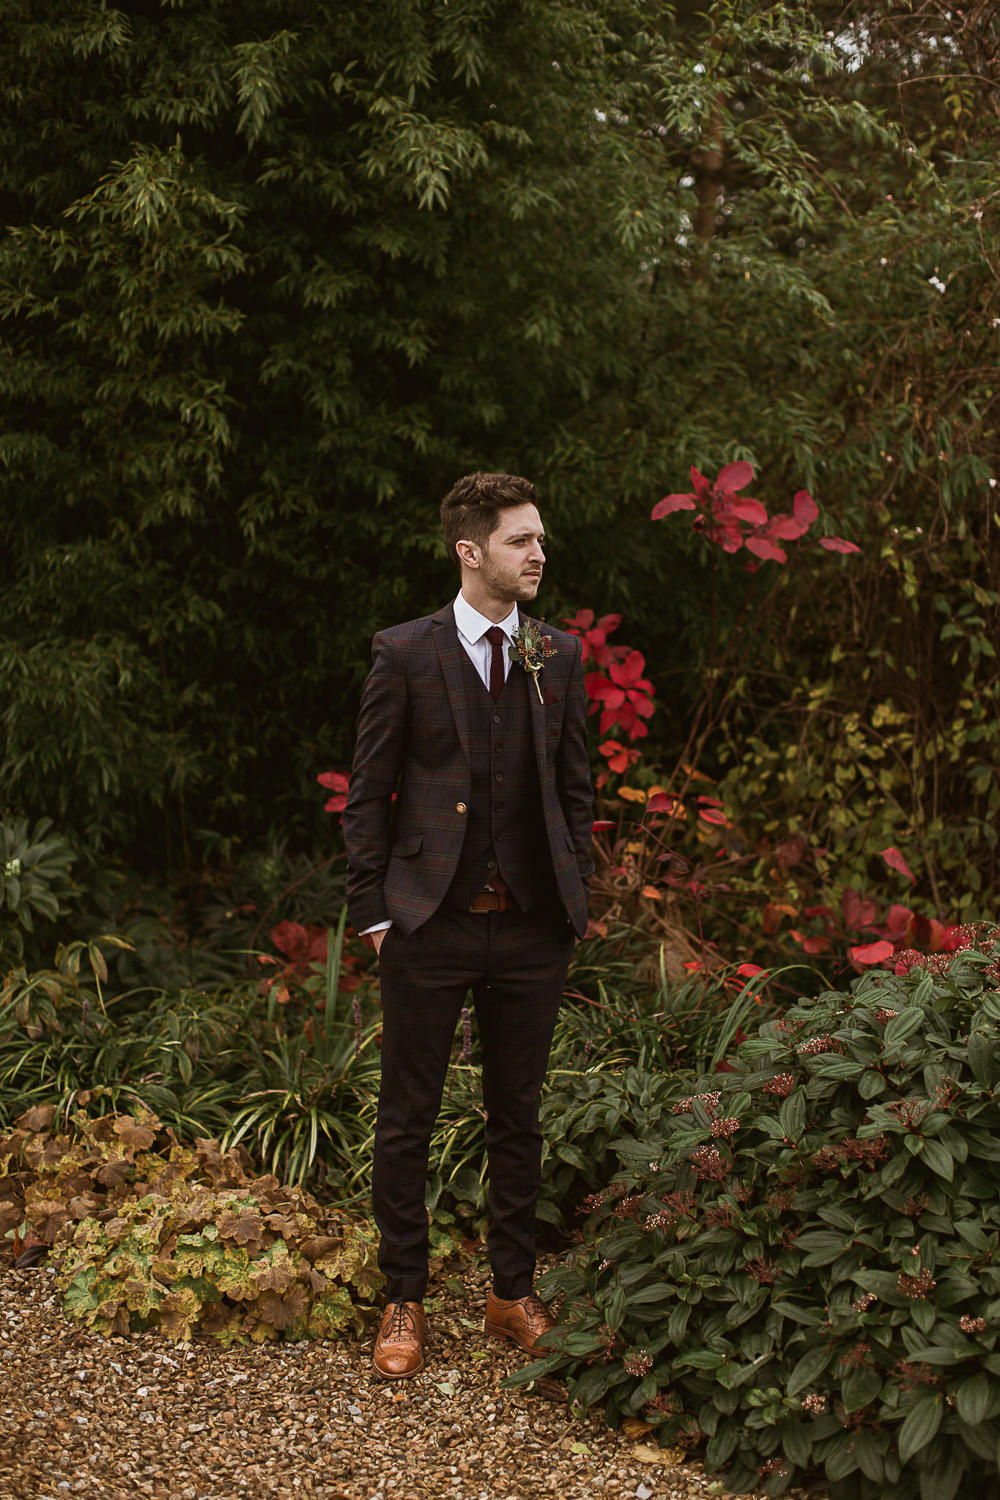 Groom Style Suit Outfit Attire Tartan Burgundy Tie Gate Street Barn Wedding The Springles